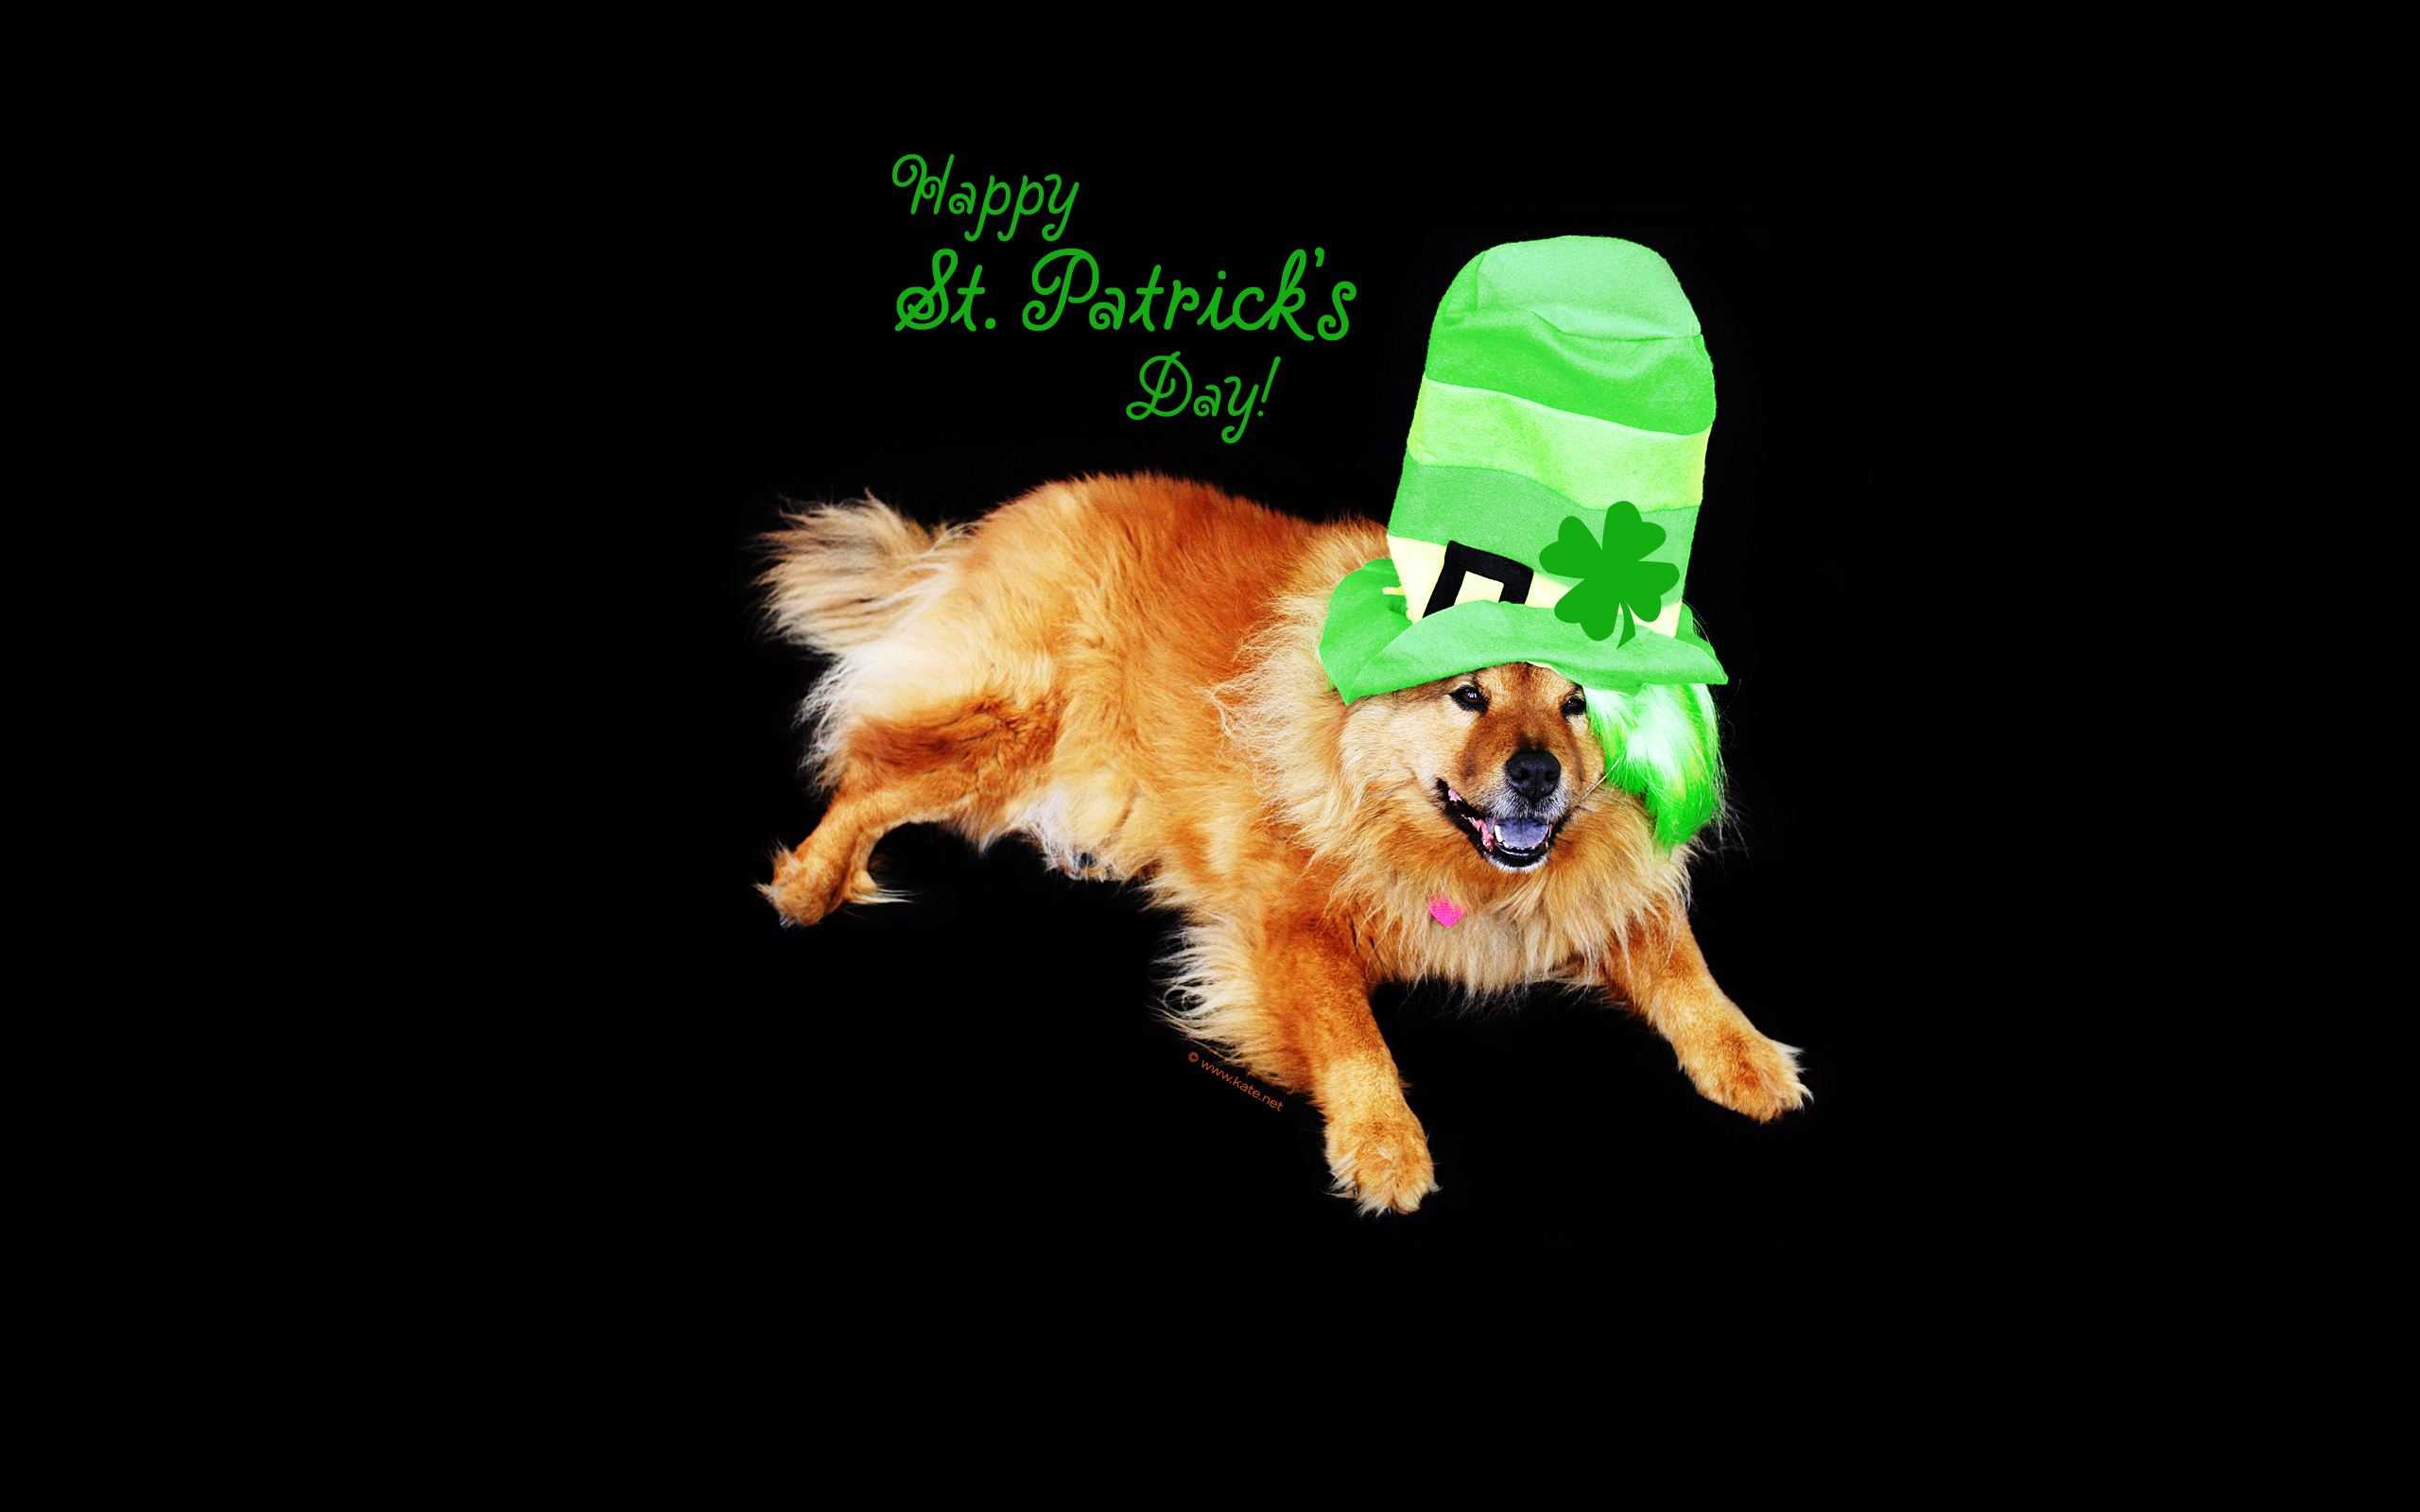 im899 St Patricks Day Cat Wallpaper 2560x1600 px   Picseriocom 2560x1600